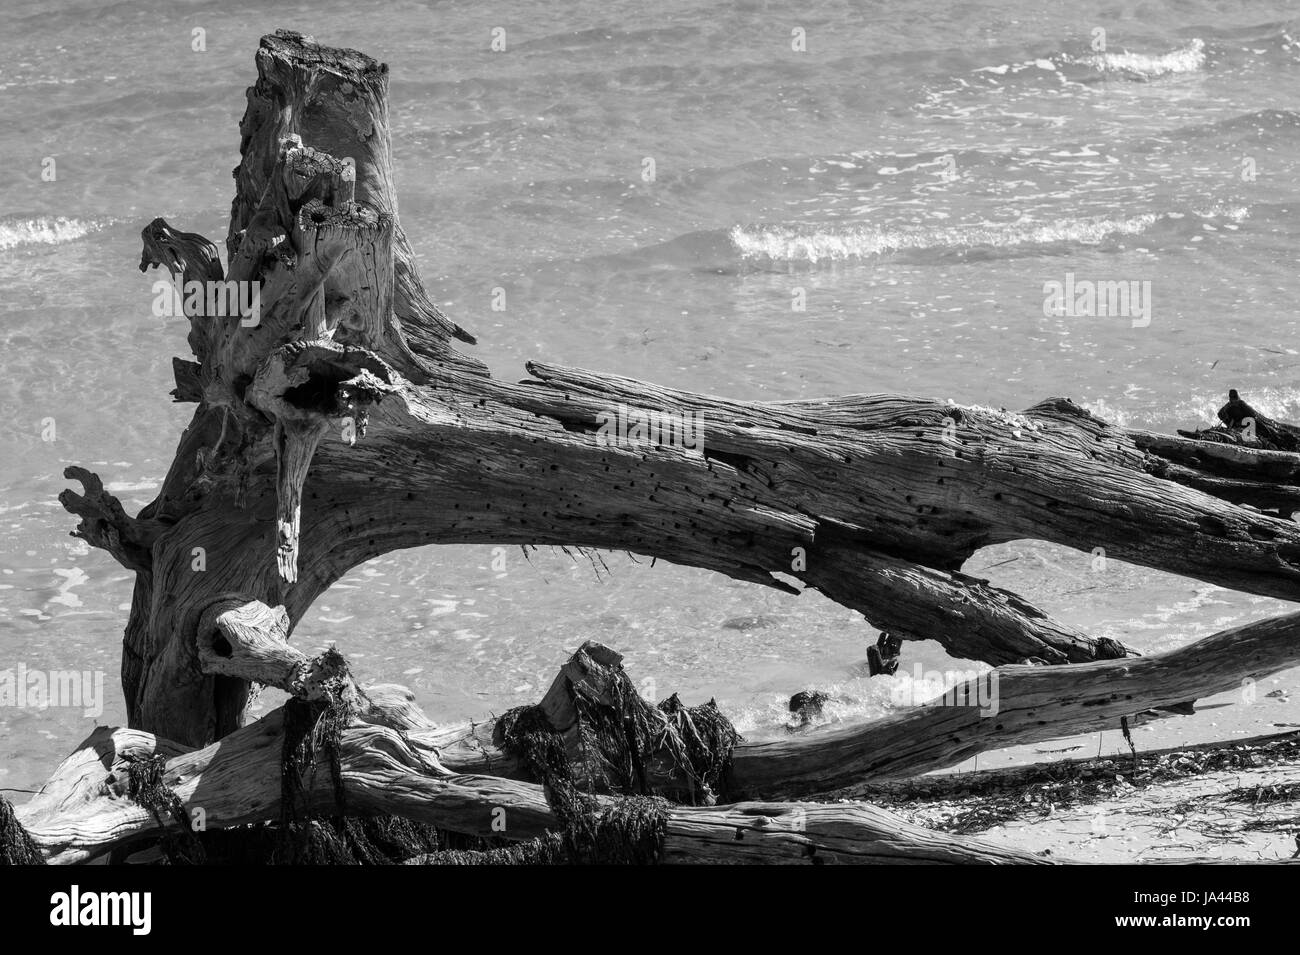 Piece of dead wood on the beach - Stock Image